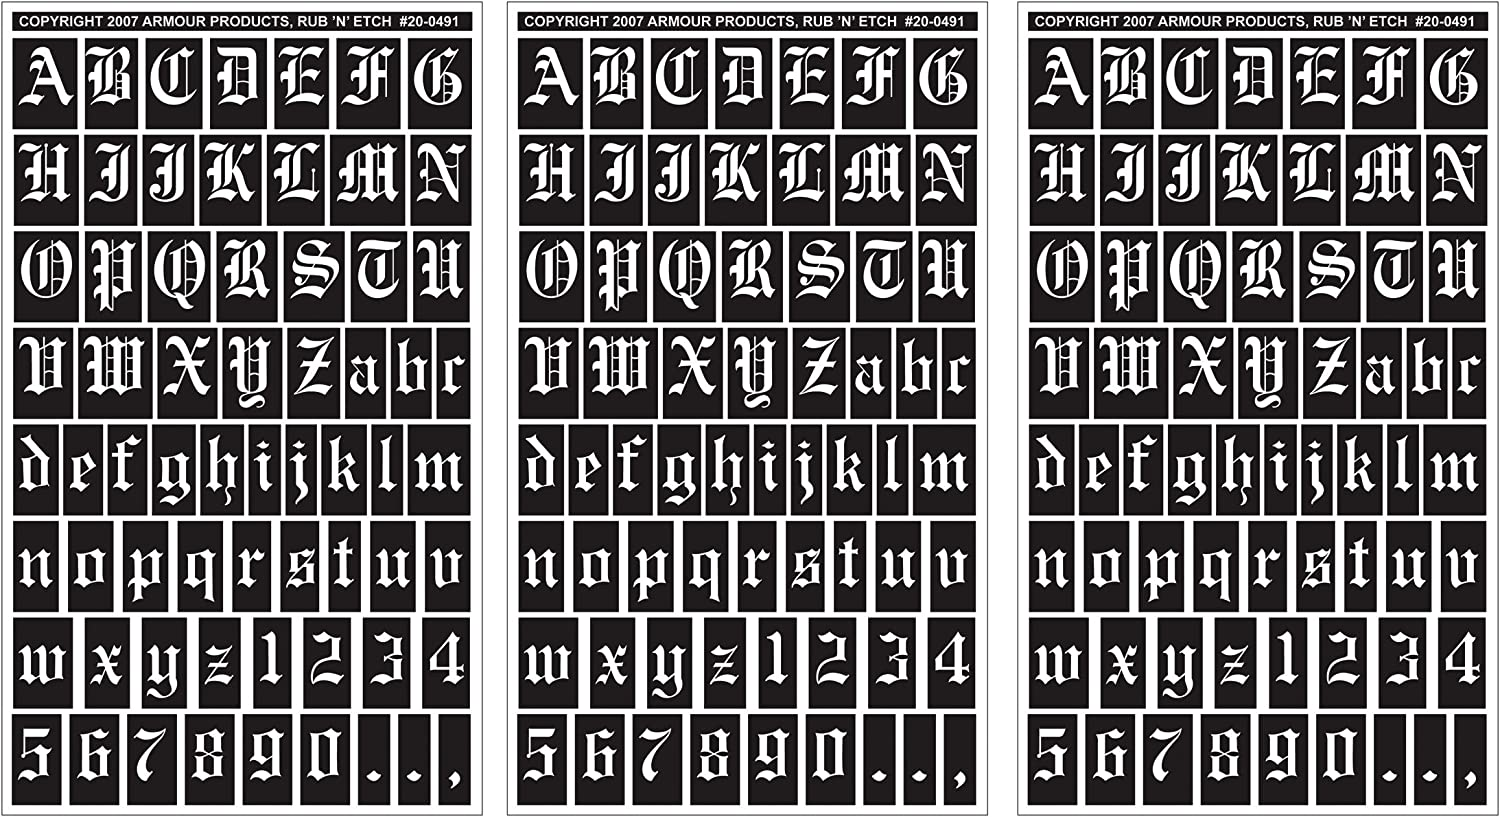 """B007S4SJTK Armour Products Rub 'n' Etch Glass Etching Stencils 5""""X8"""" 3/Pkg Old English Letters & Numbers 12-7026 91lASy2B1Q4L"""